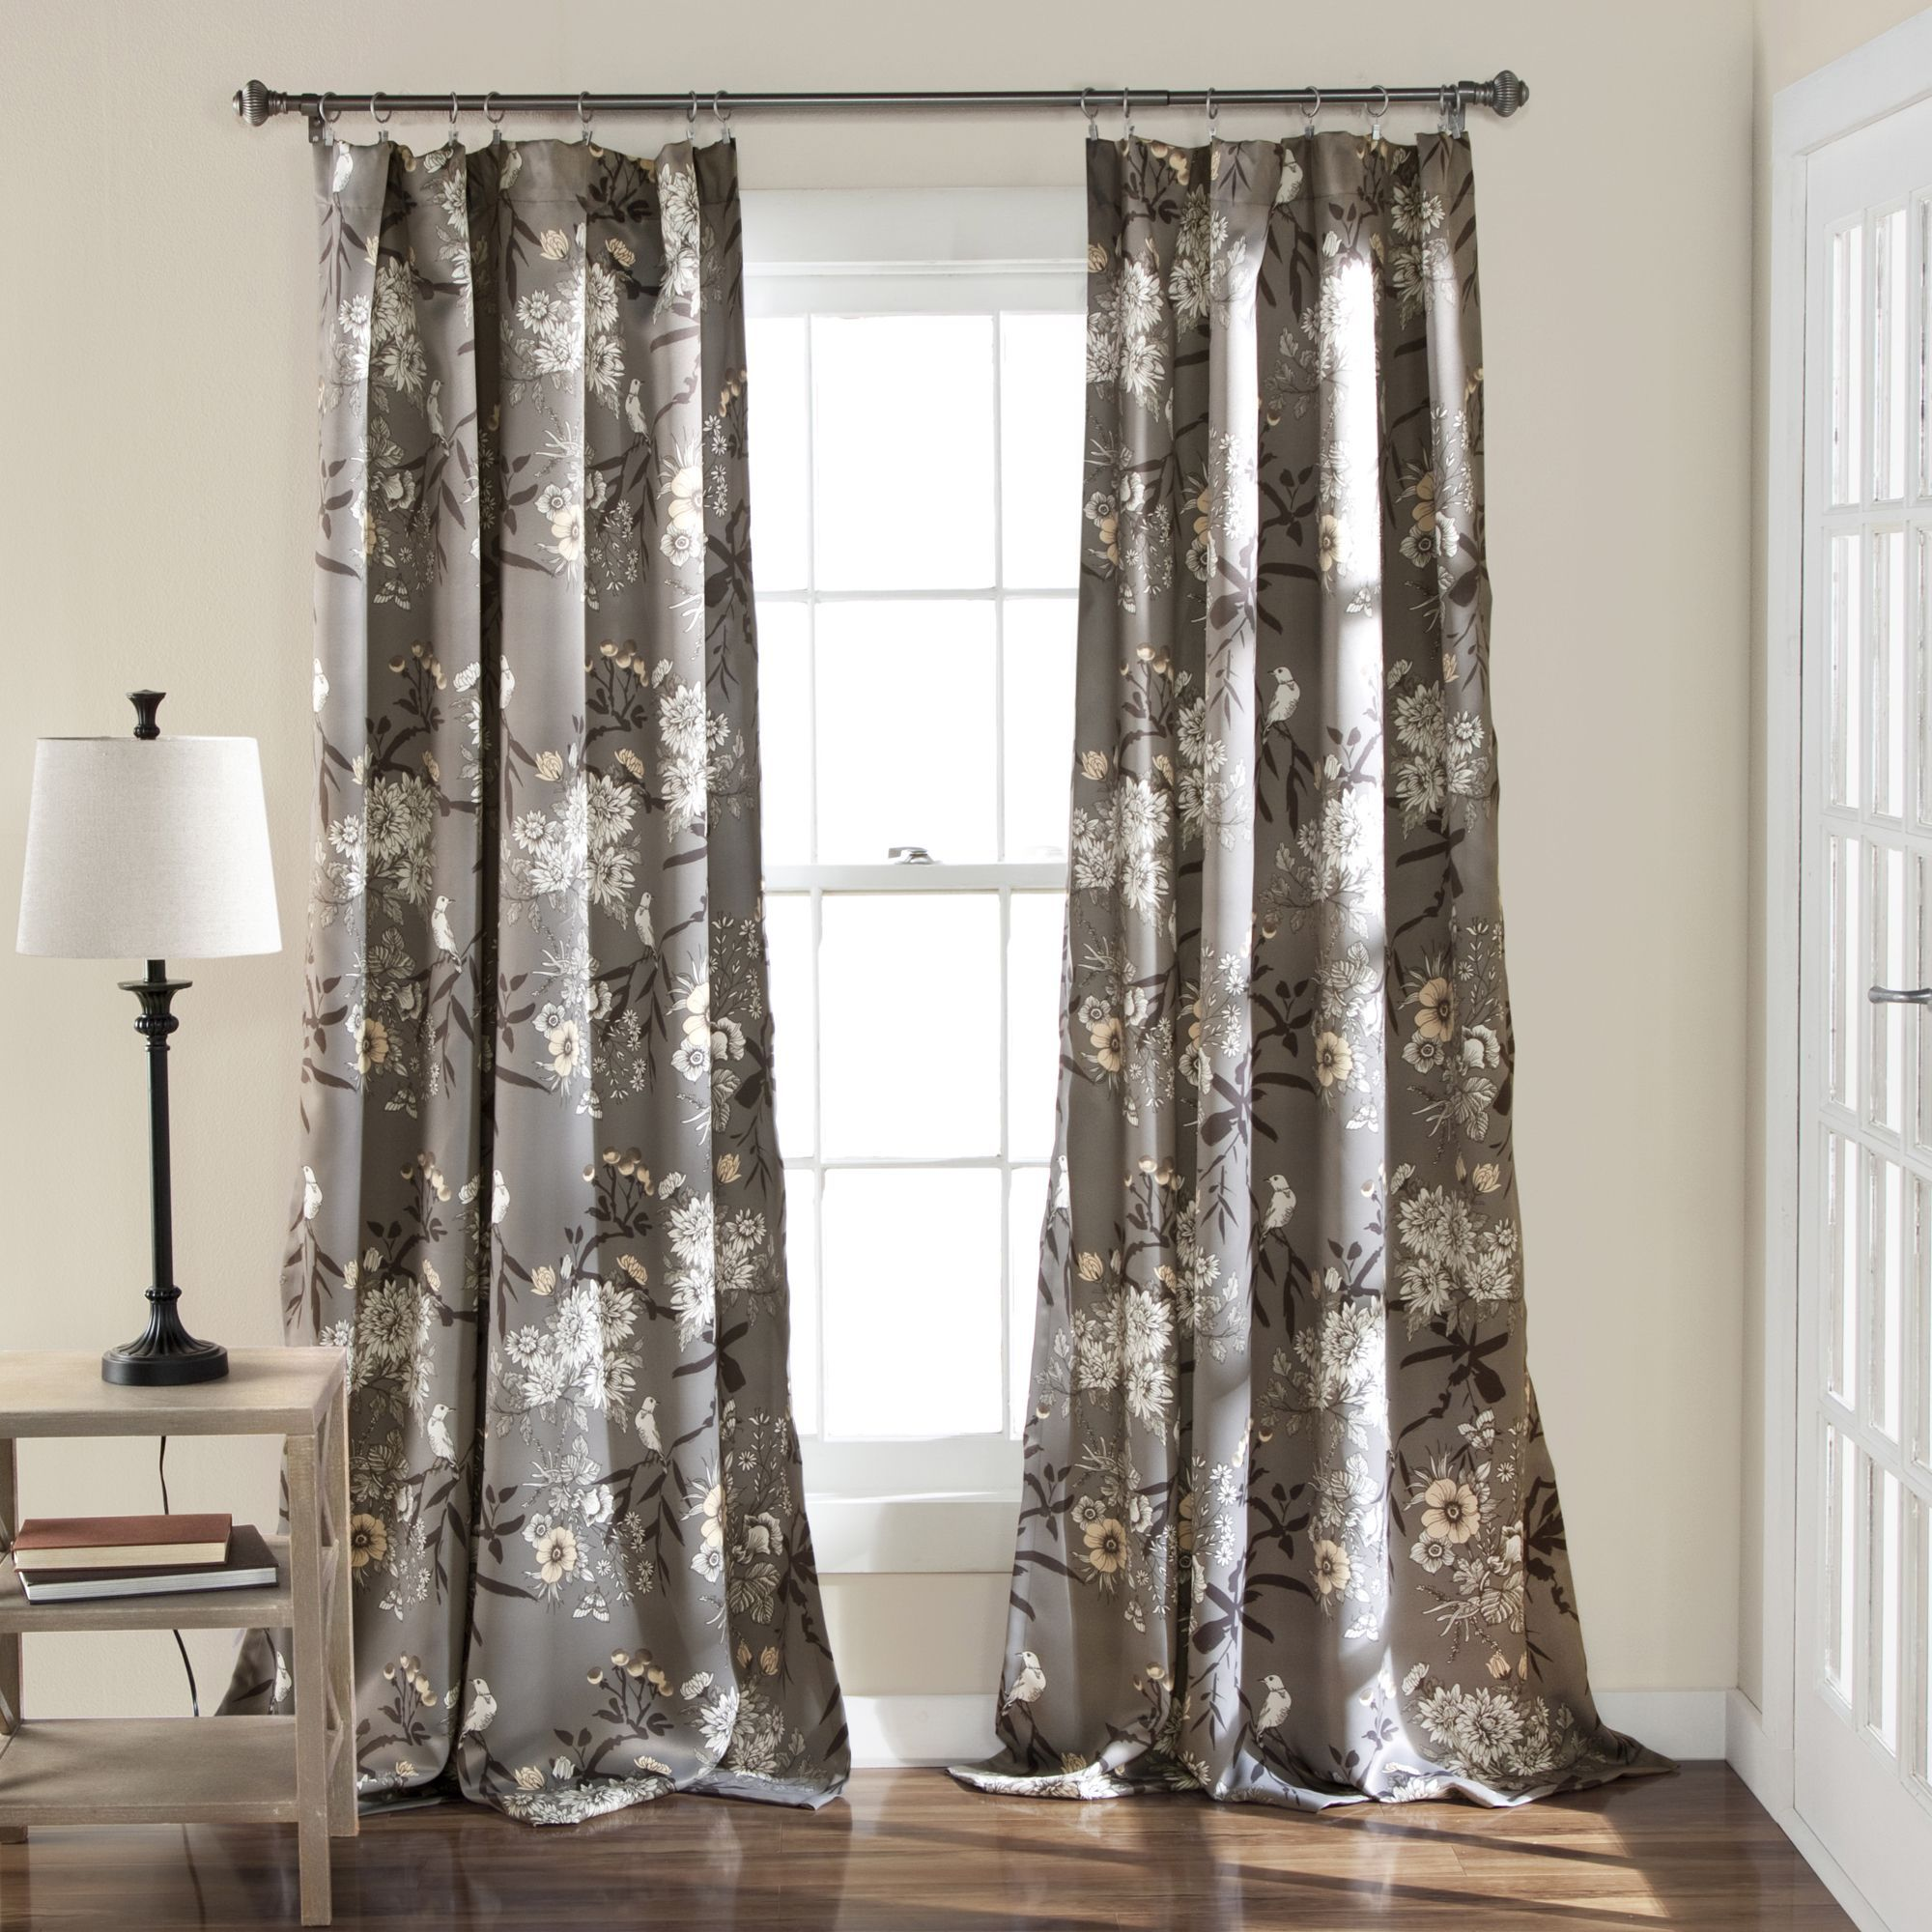 Garden window coverings  update your window treatments with elegant style by decorating with